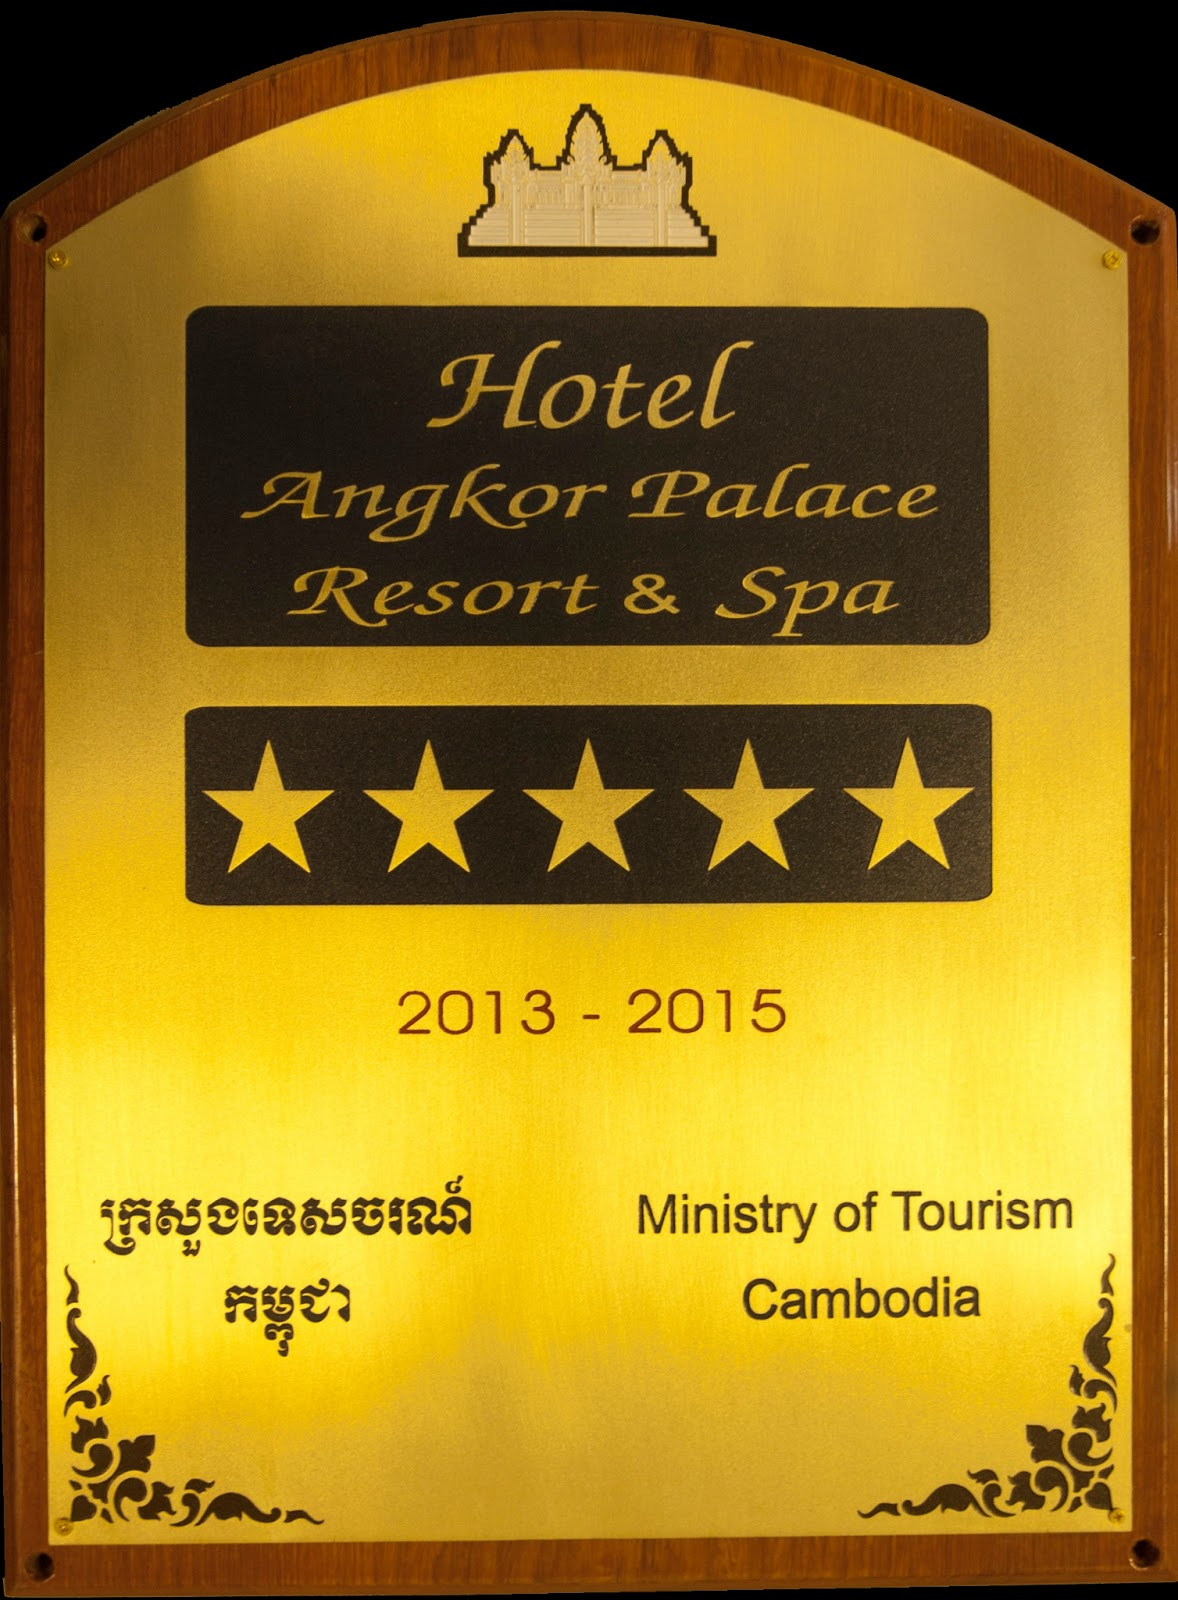 Siem Reap Angkor Cambodia Again 5 Star Hotel Award 2017 From Ministry Of Tourism